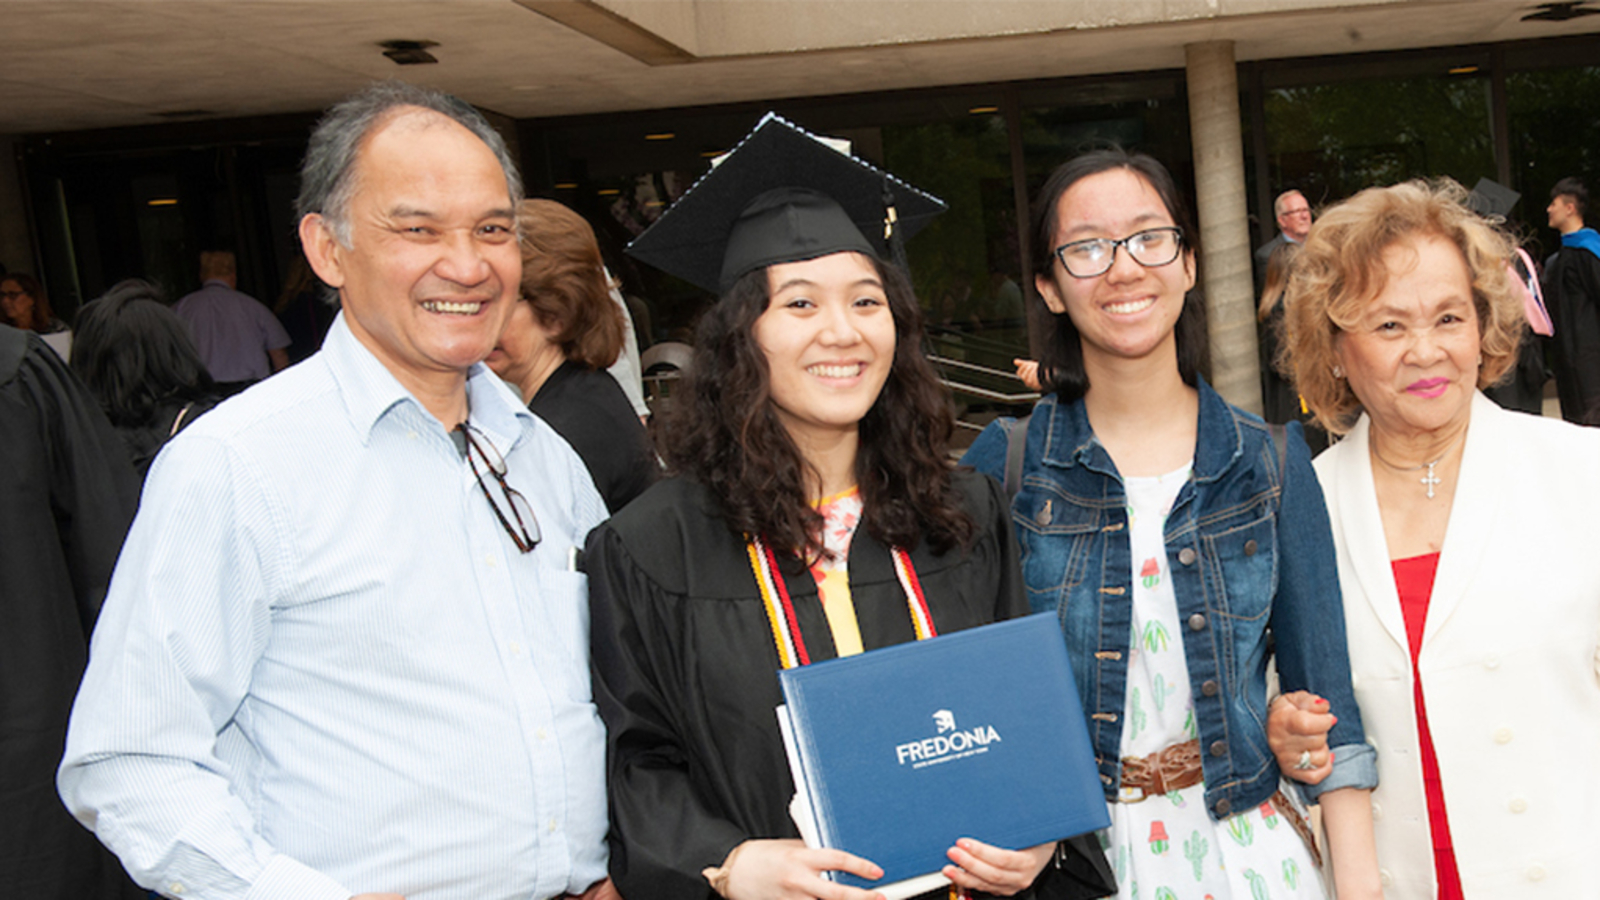 a family poses for a photo at commencement